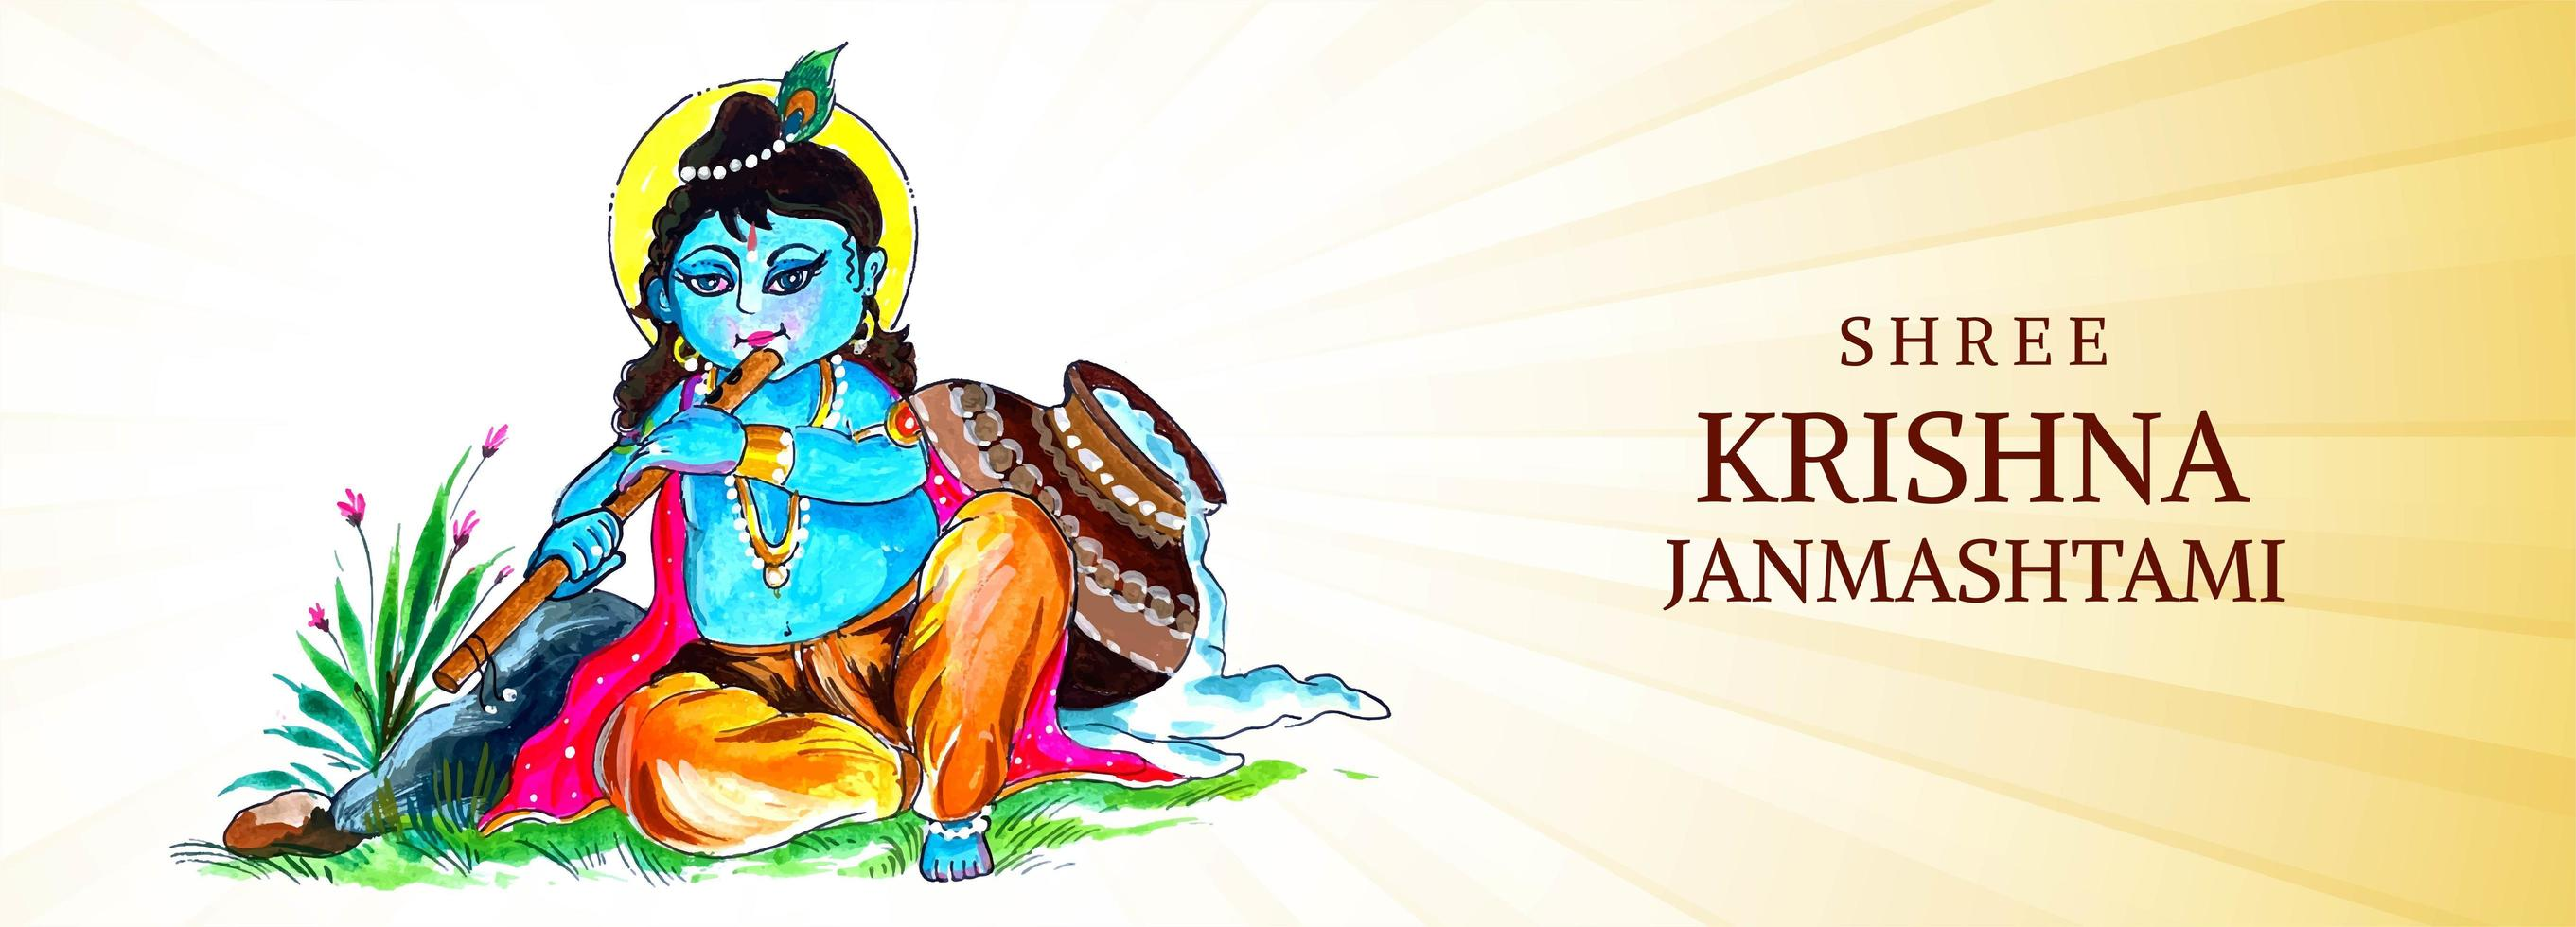 Happy Krishna Sitting and Playing Flute Janmashtami Festival Banner vector